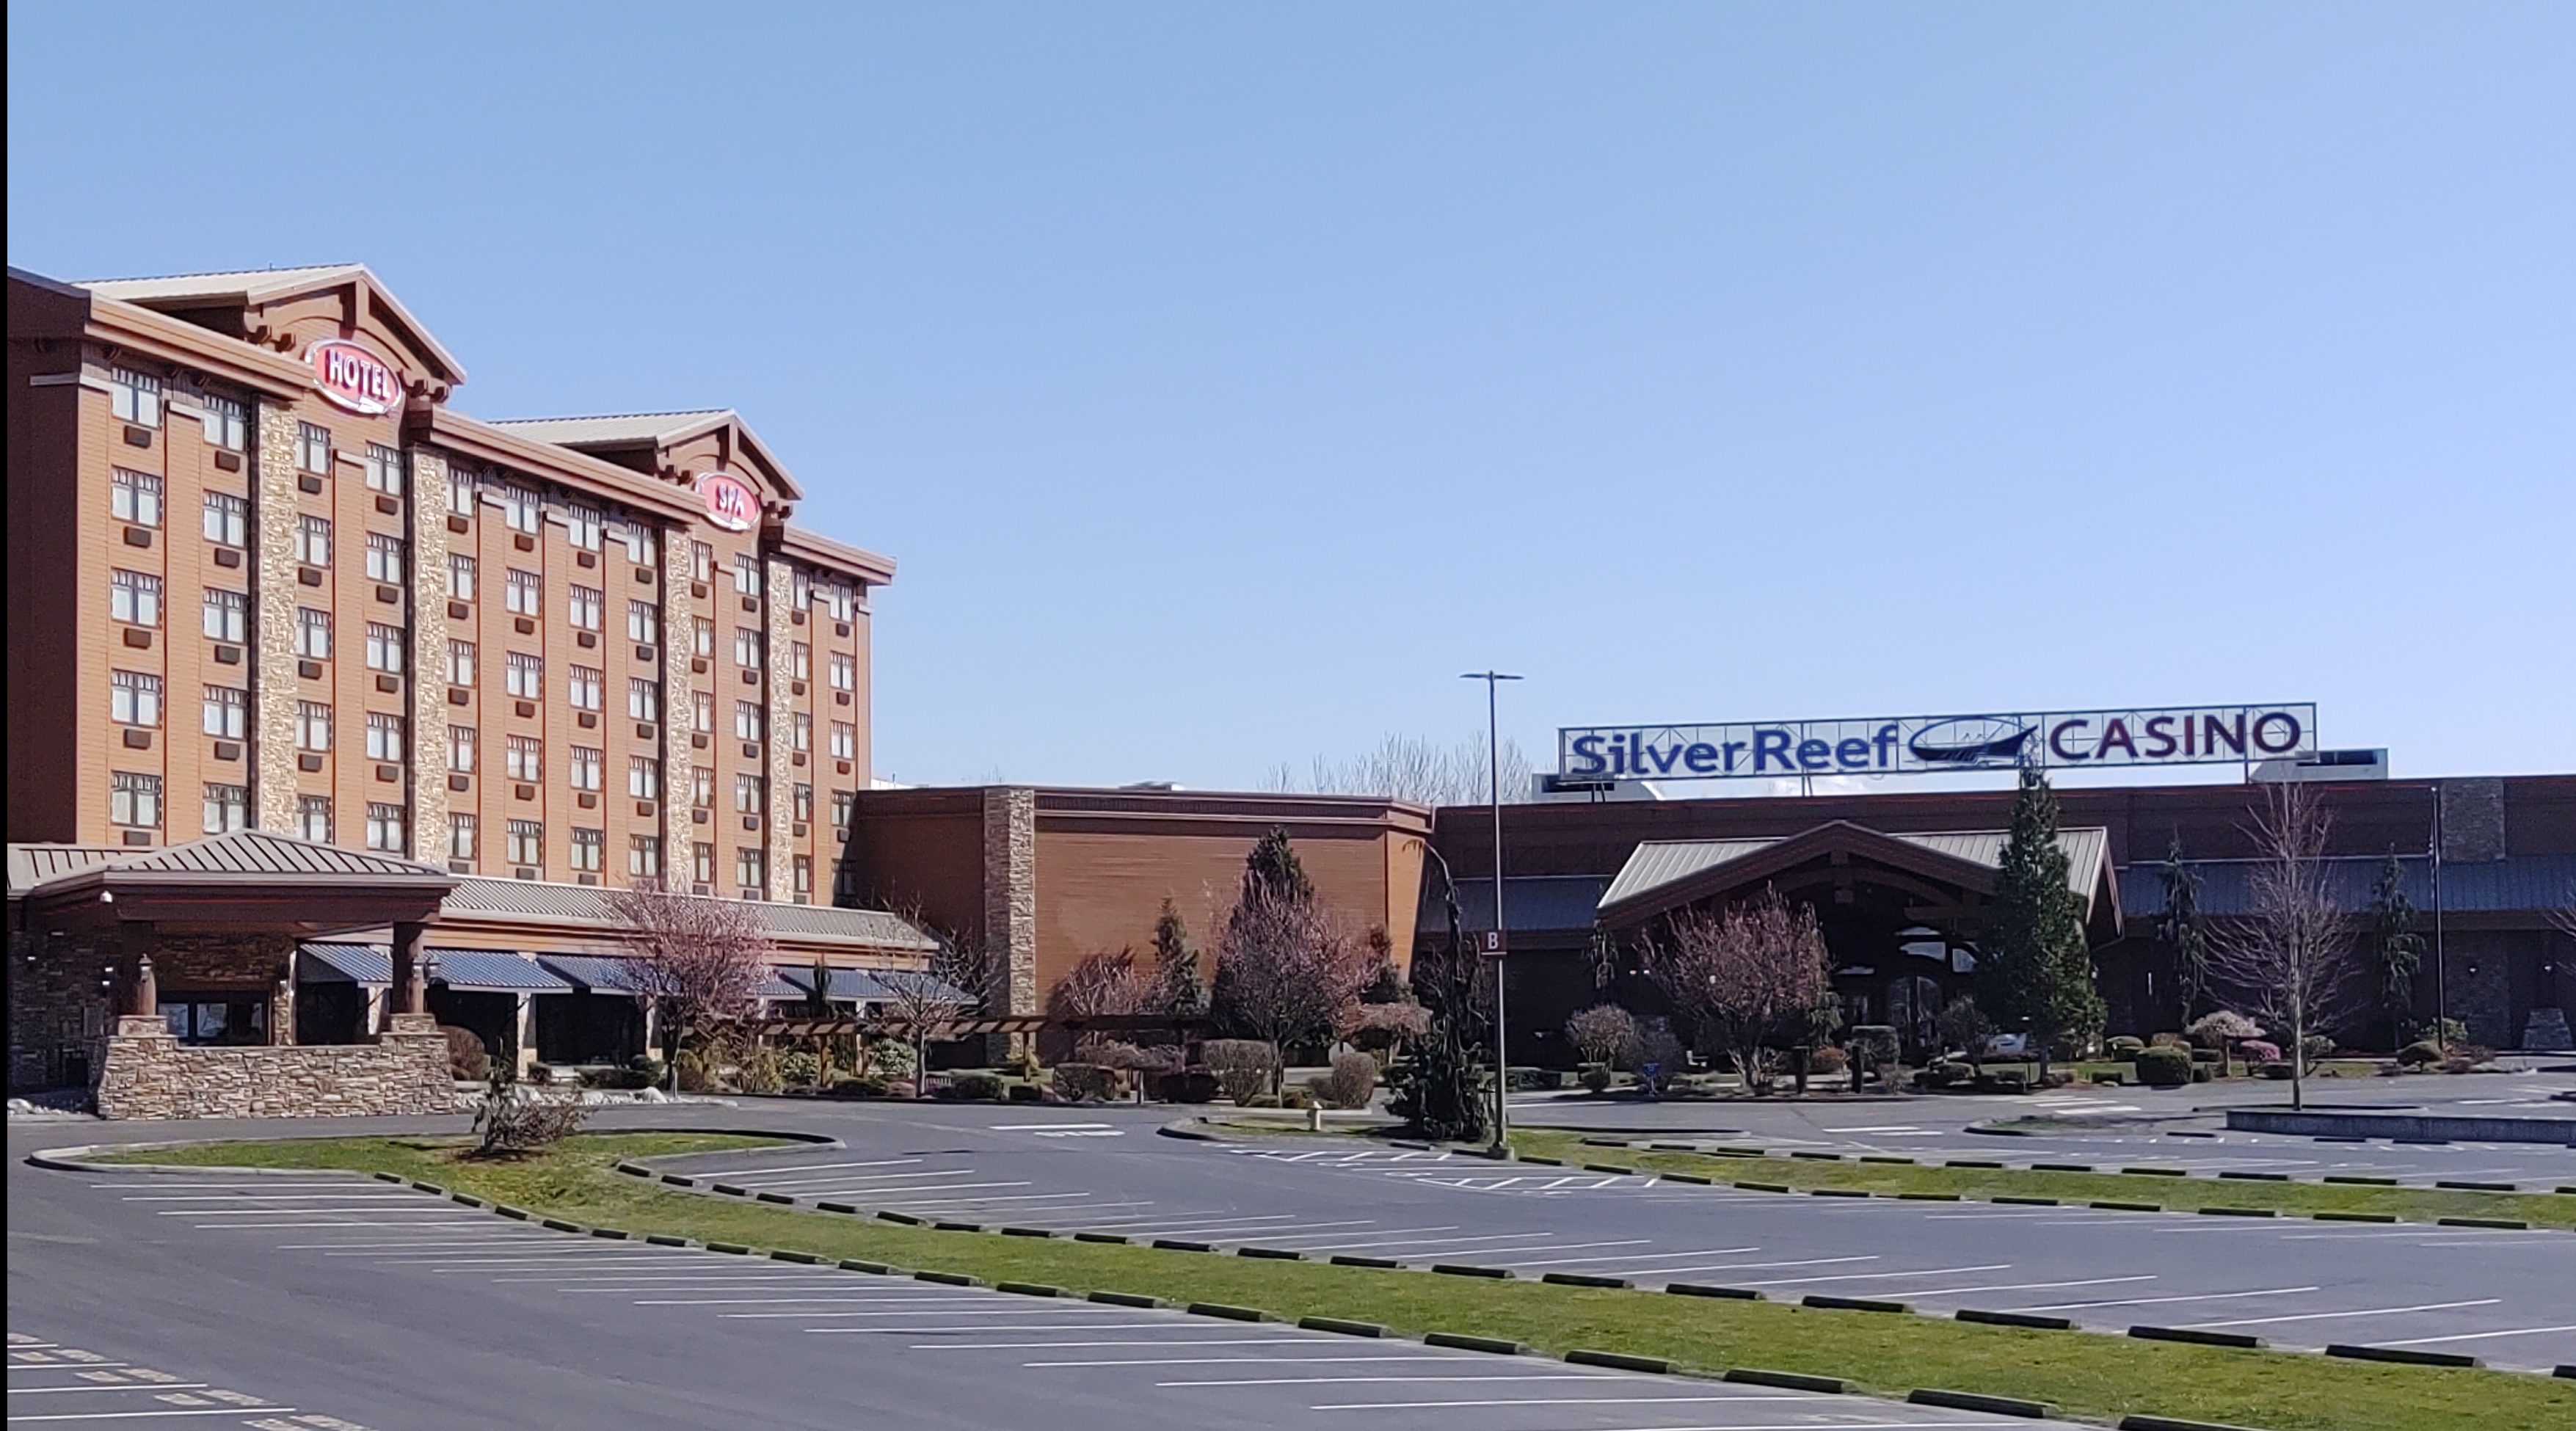 Silver Reef Hotel and Casino exterior (March 20, 2020). Photo: My Ferndale News